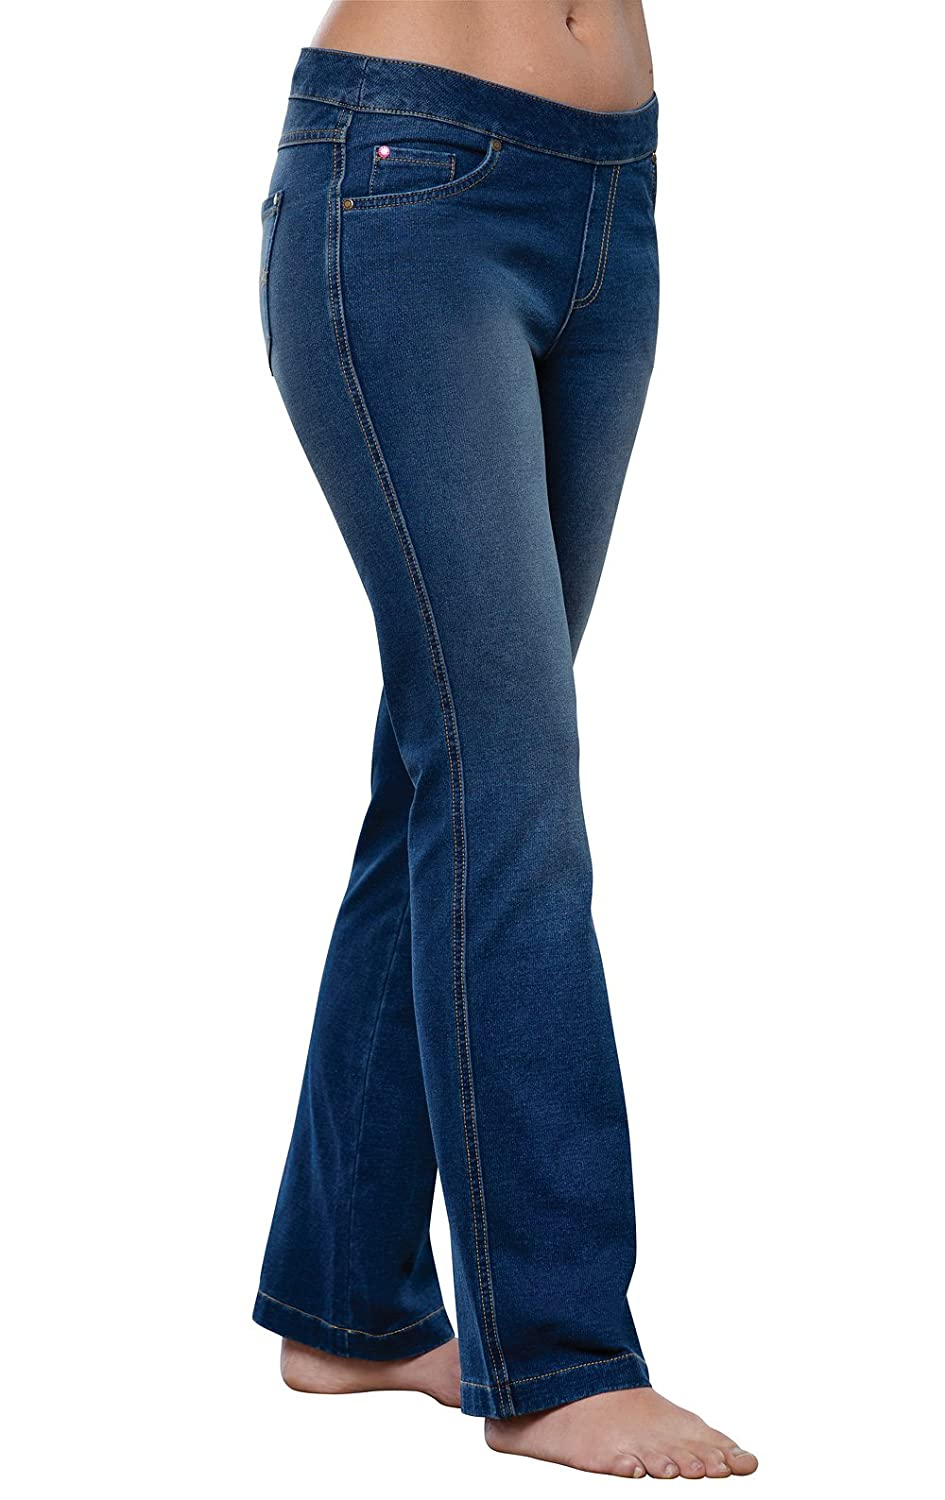 blueestone Wash PajamaJeans Women's Bootcut Stretch Knit Denim Jeans